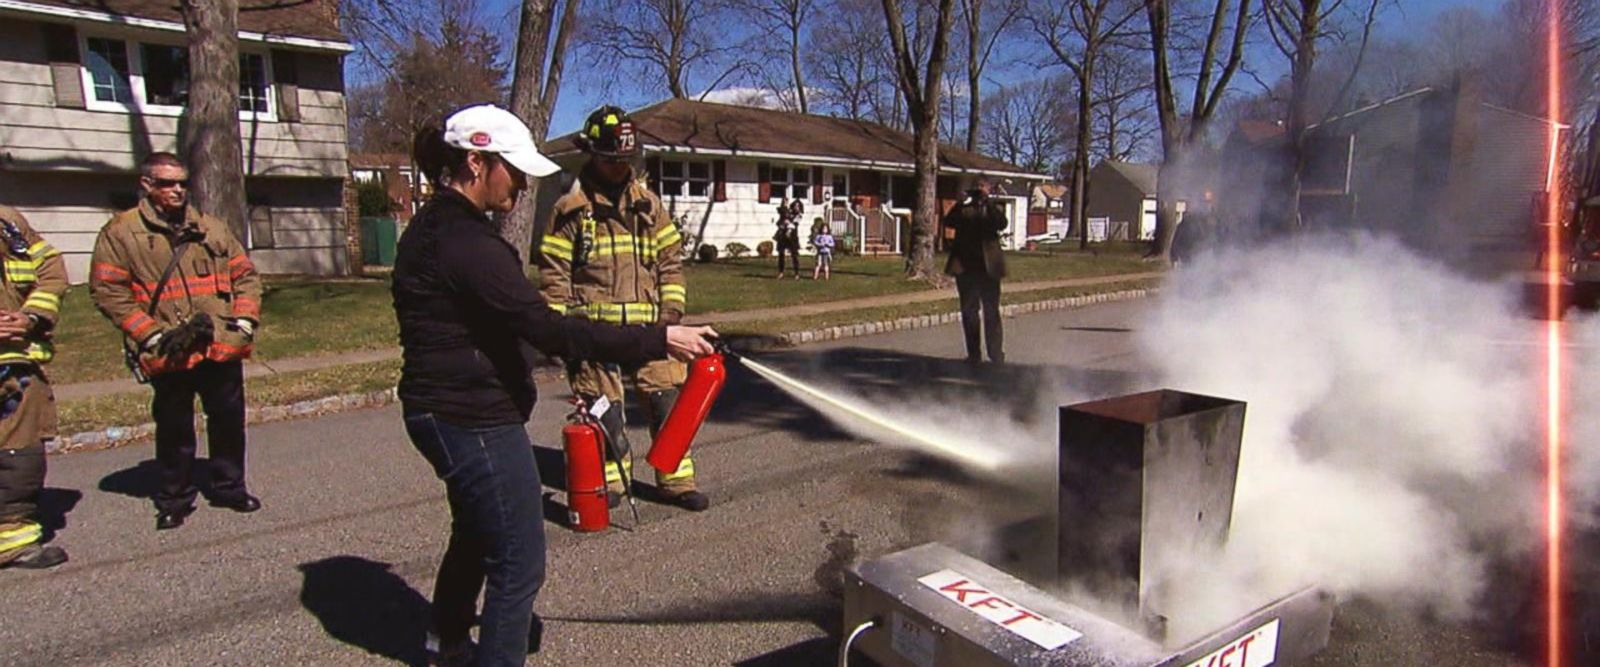 VIDEO: New warning about fire extinguishers